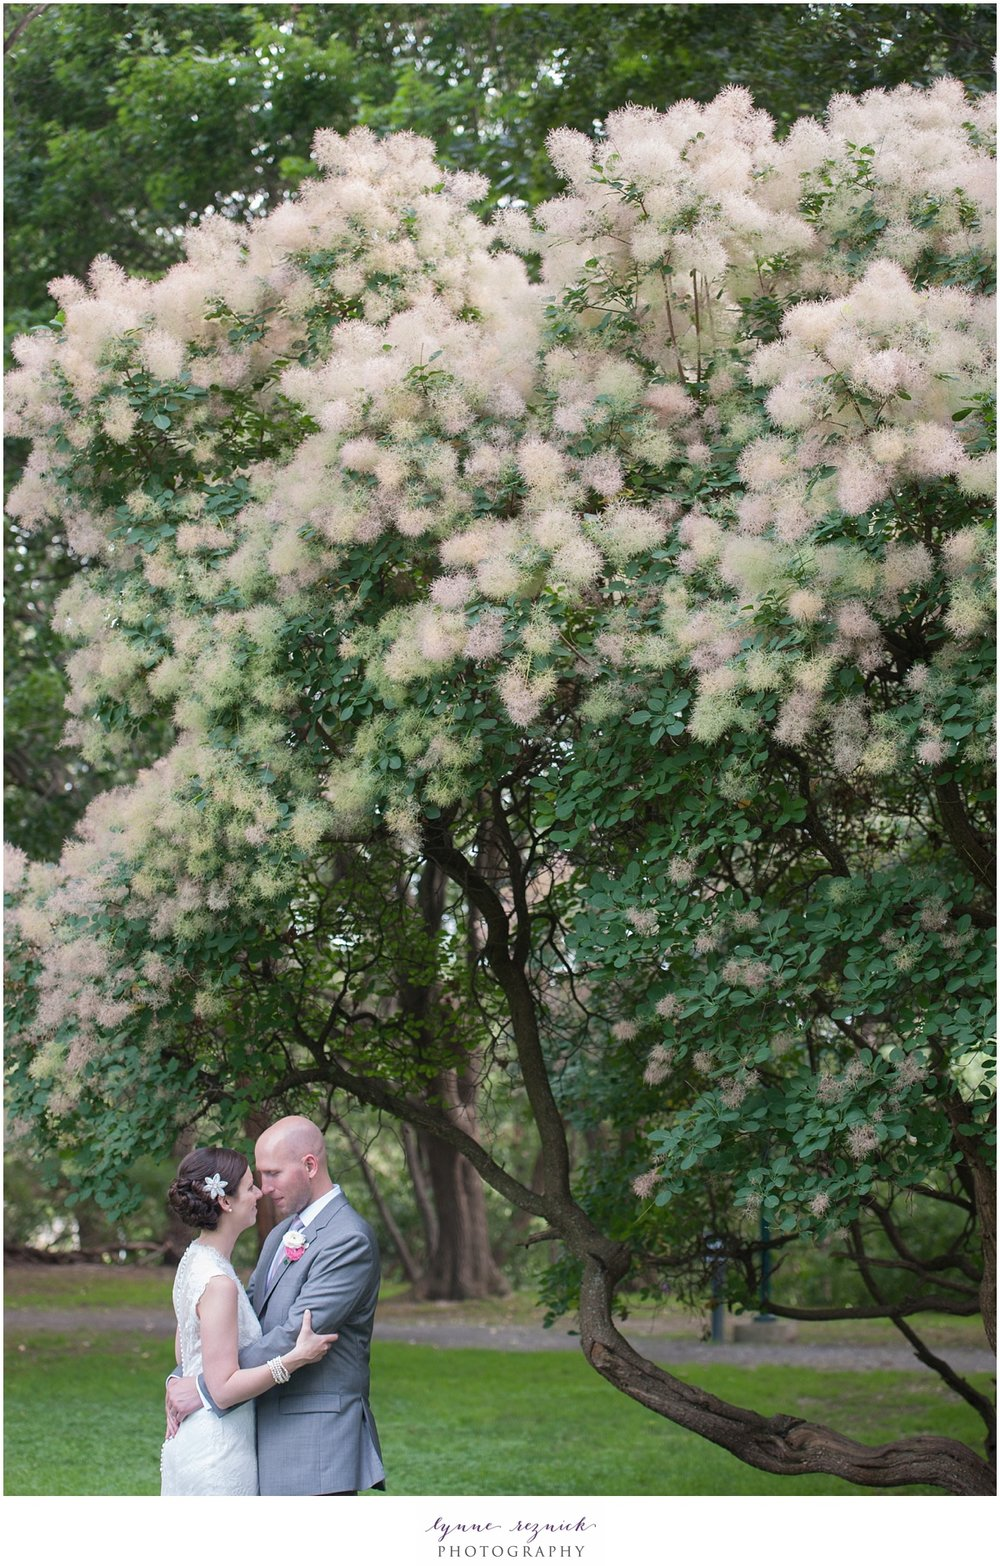 commanders mansion estate offers beautiful trees and curated grounds for couples portraits on your wedding day